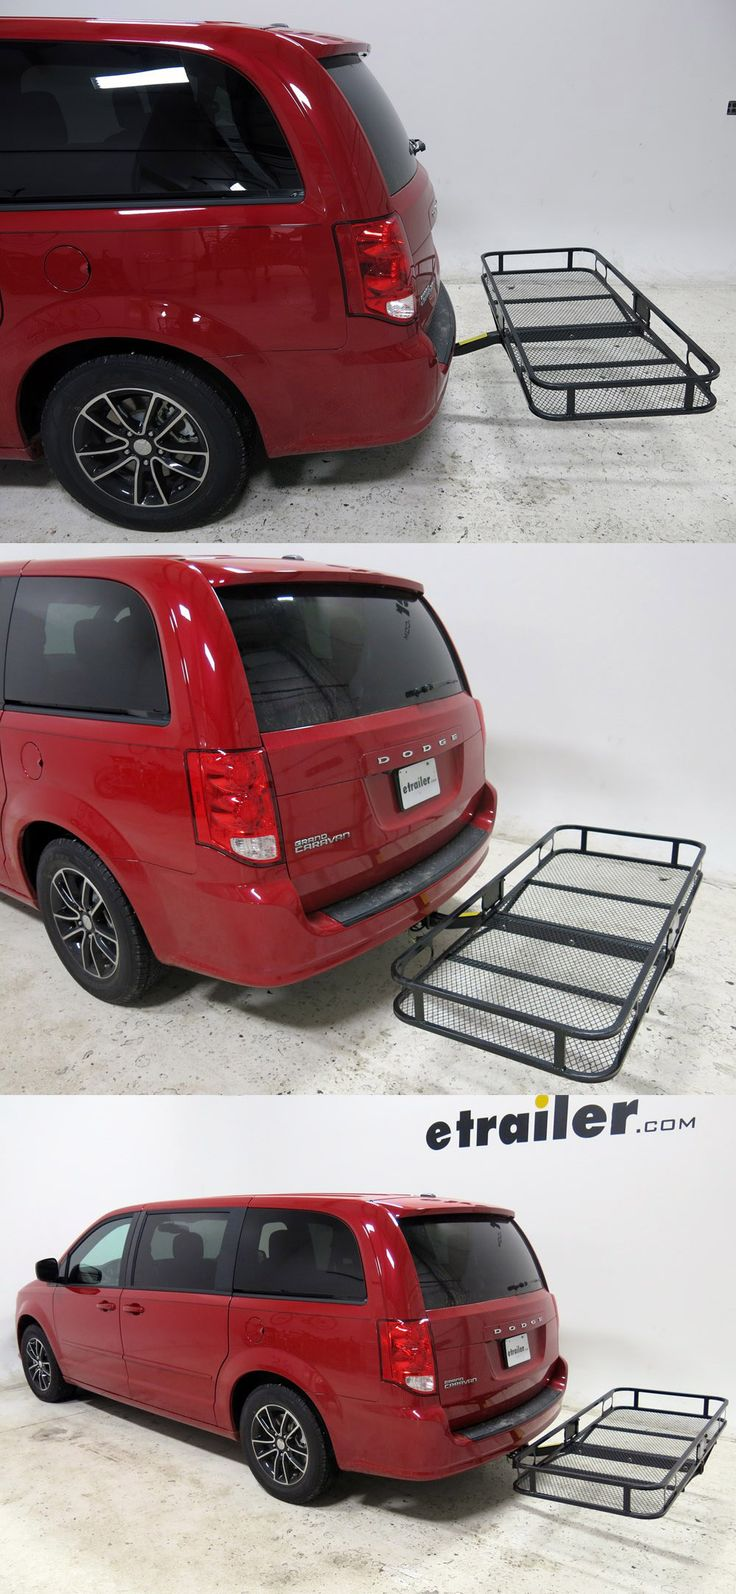 For carrying extra camping, hiking, fishing and other gear on long road trips and adventures! An awesome accessory for the Dodge Grand Caravan is the Pro Series Cargo Carrier - sturdy, black powder coated steel and corrosion resistant.